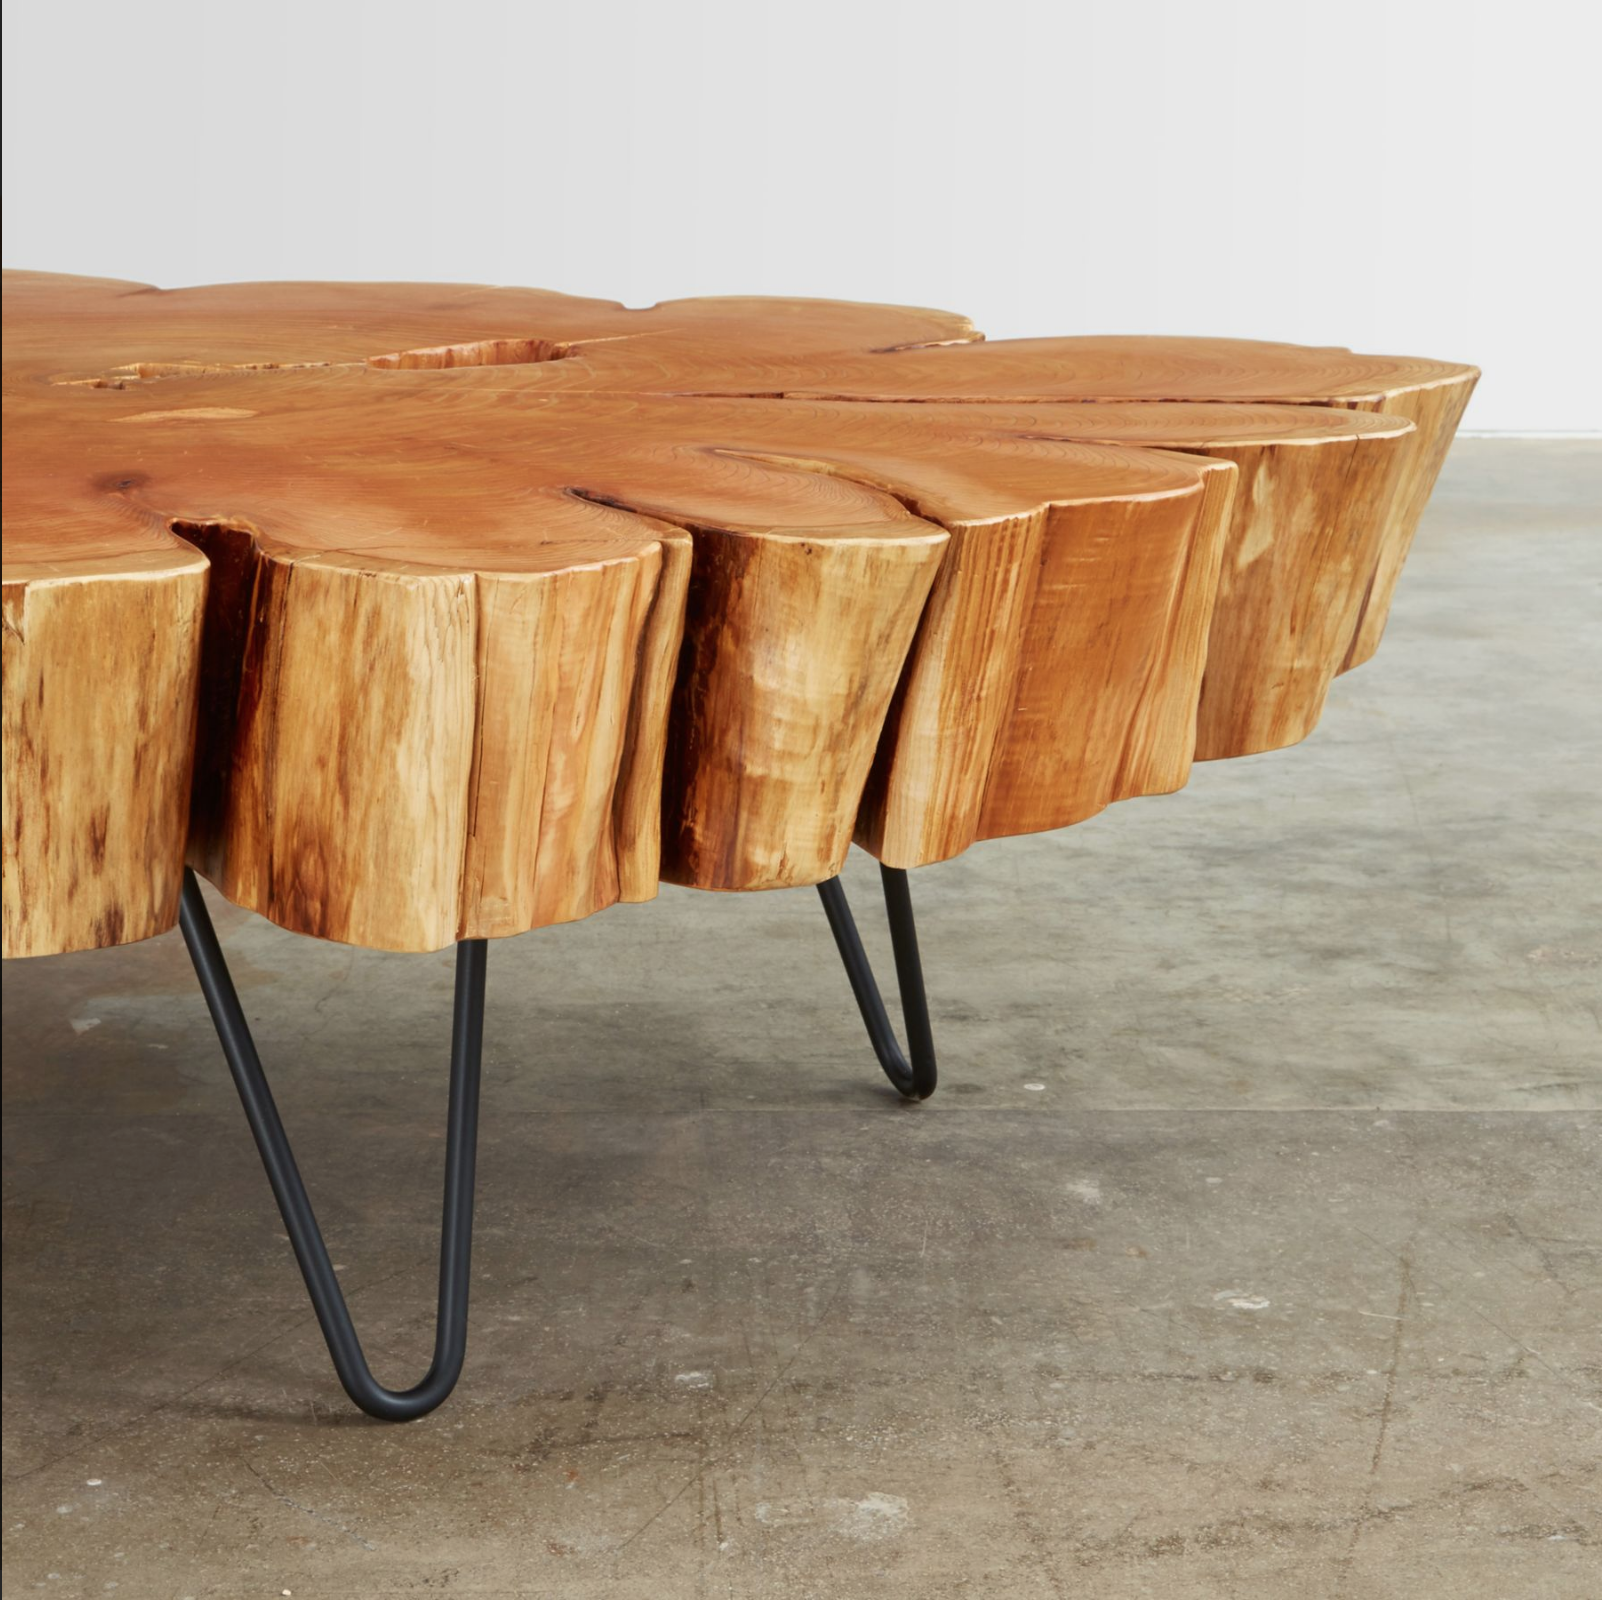 Trees are given a second life as Urban Hardwood furniture that is